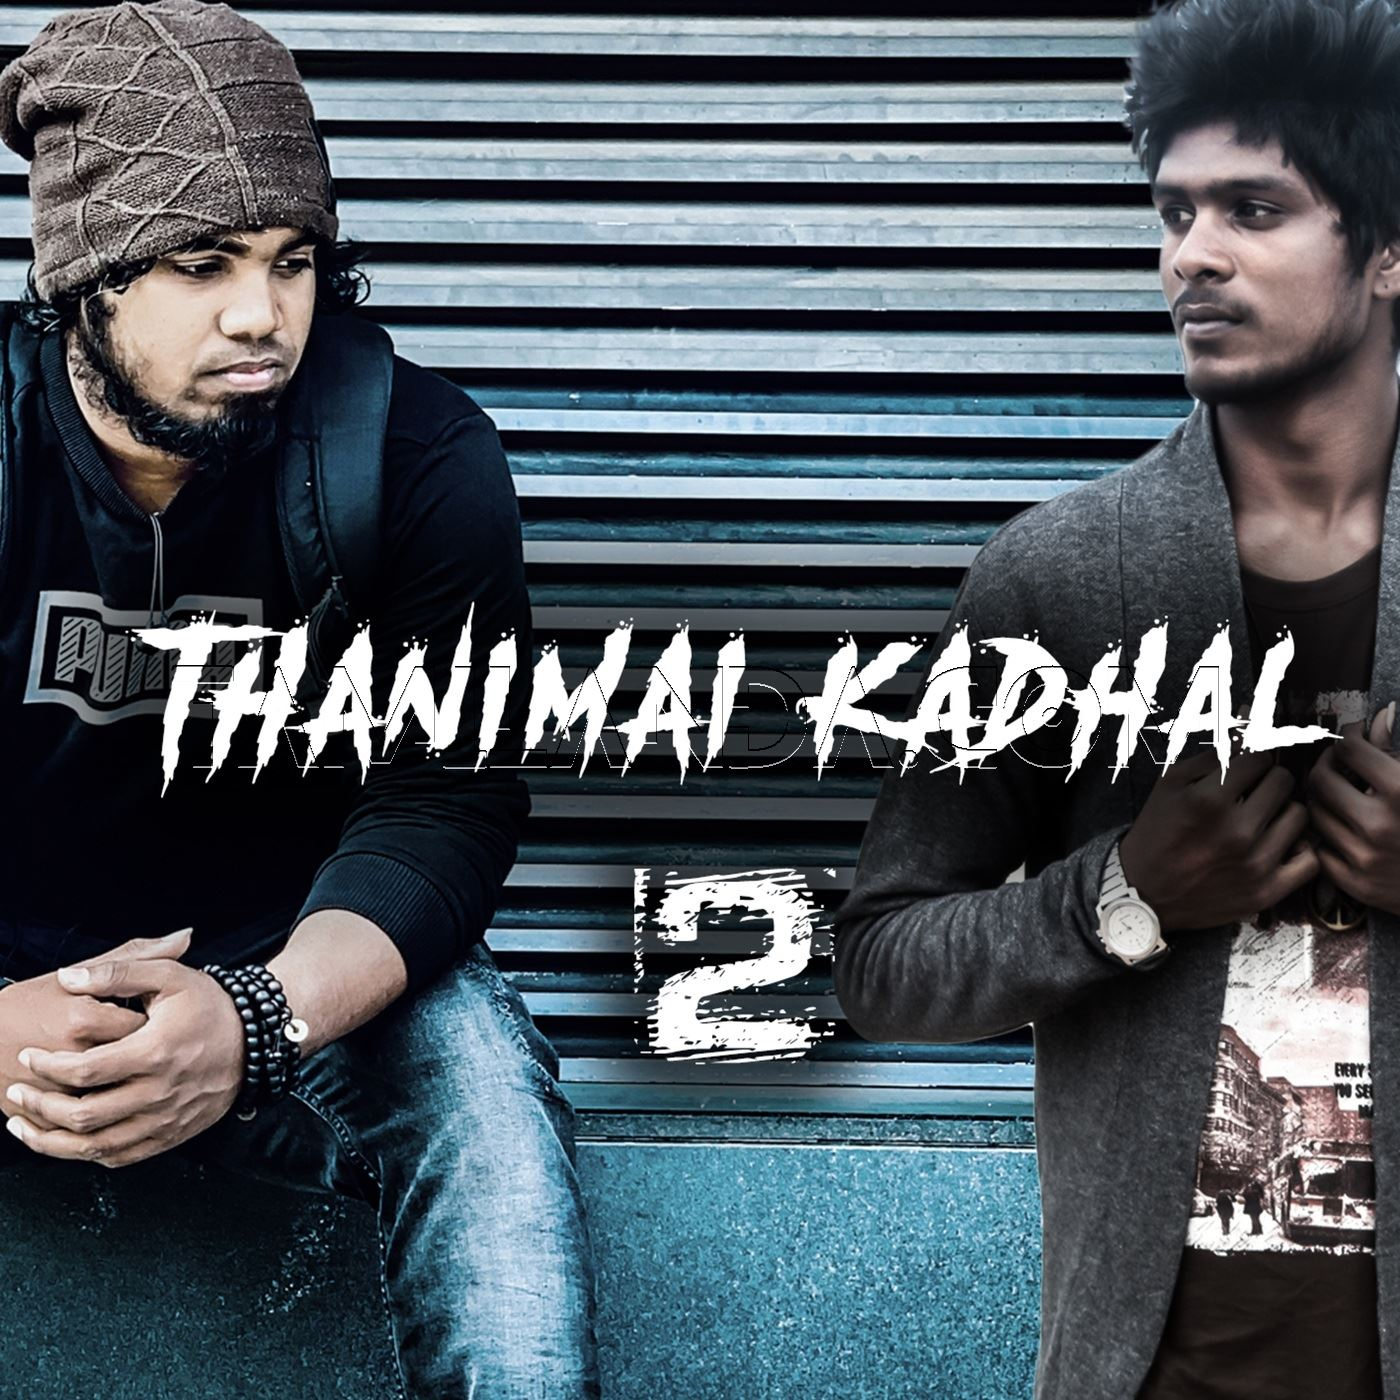 Thanimai Kadhal 2 [Female Version] Single FLAC Song (2019)